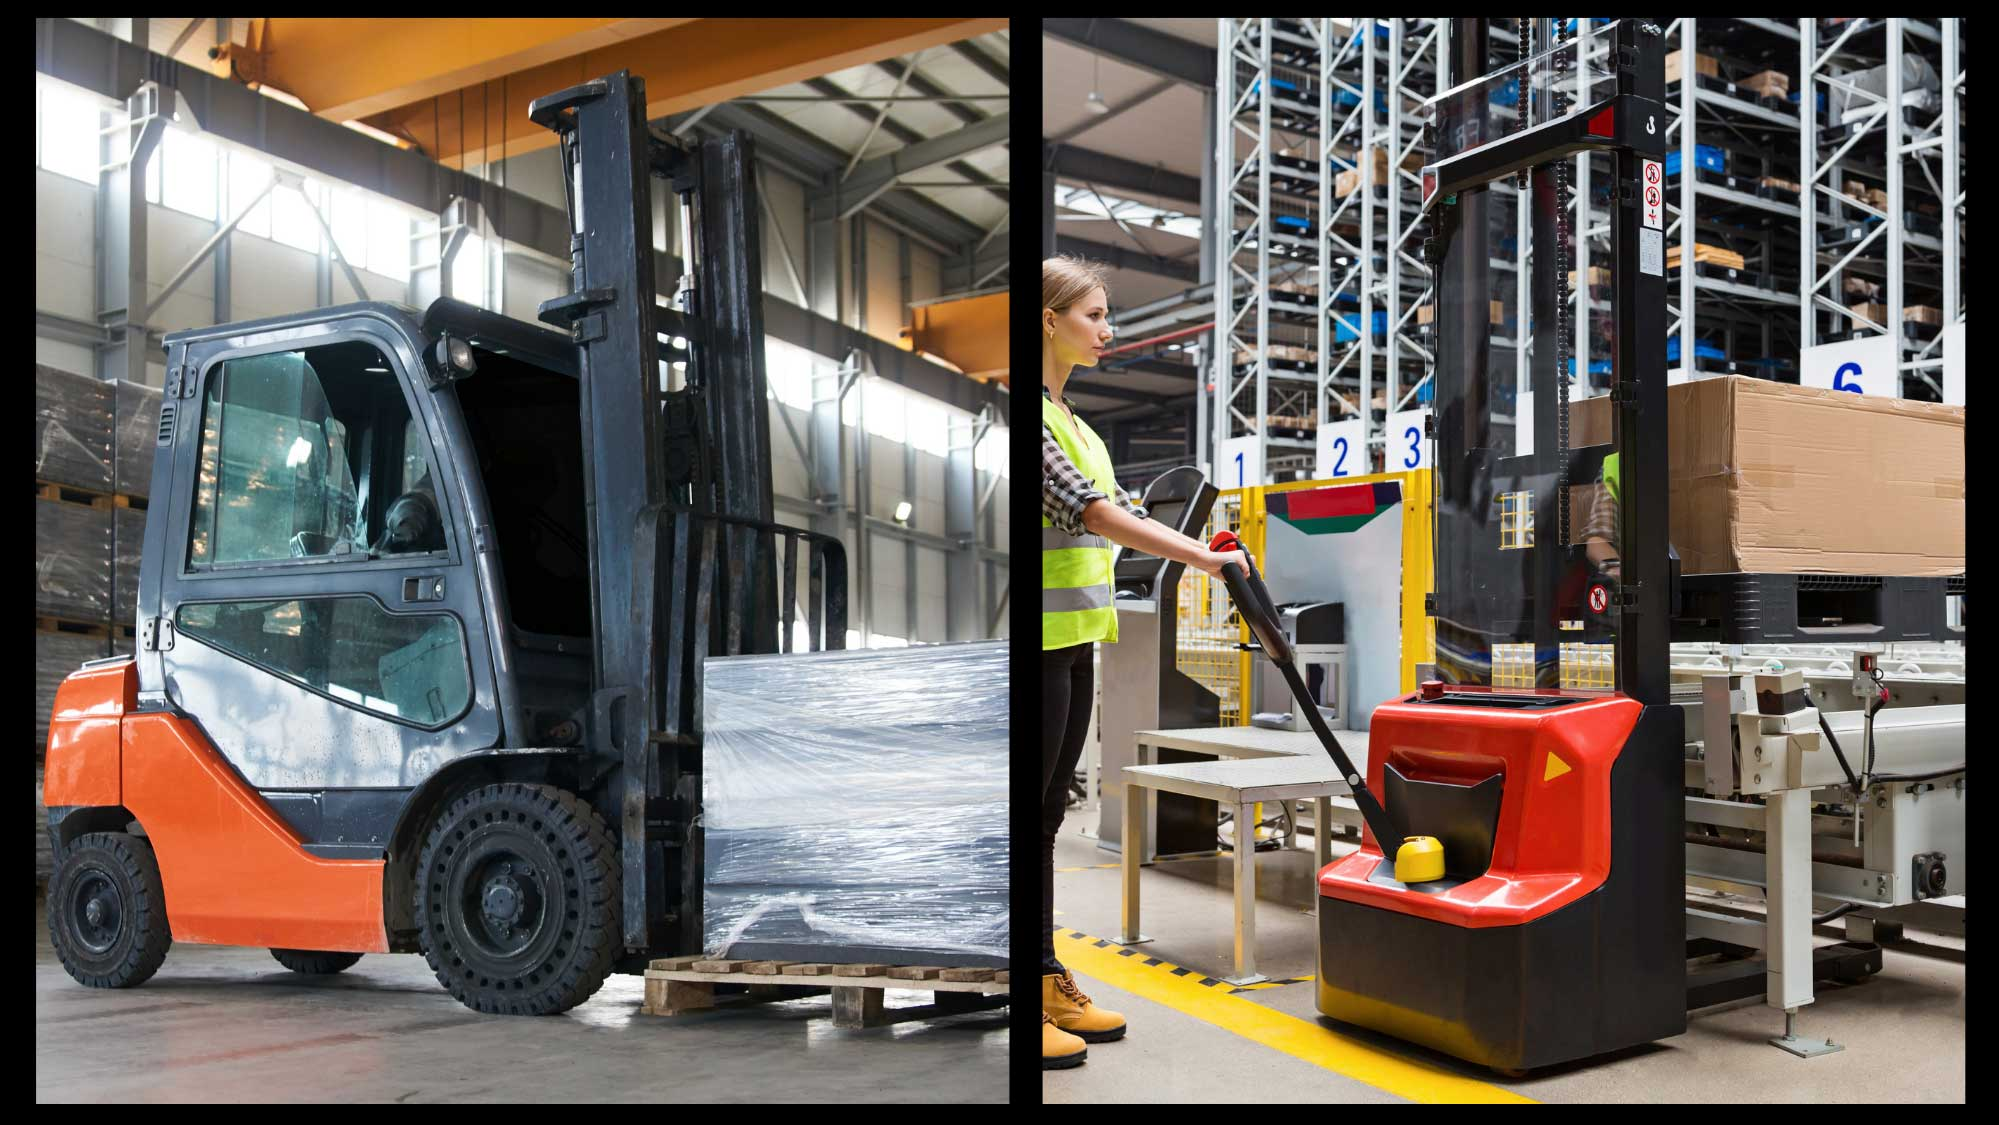 Pallet Stacker Vs. Forklift: Which Is the Best Fit?